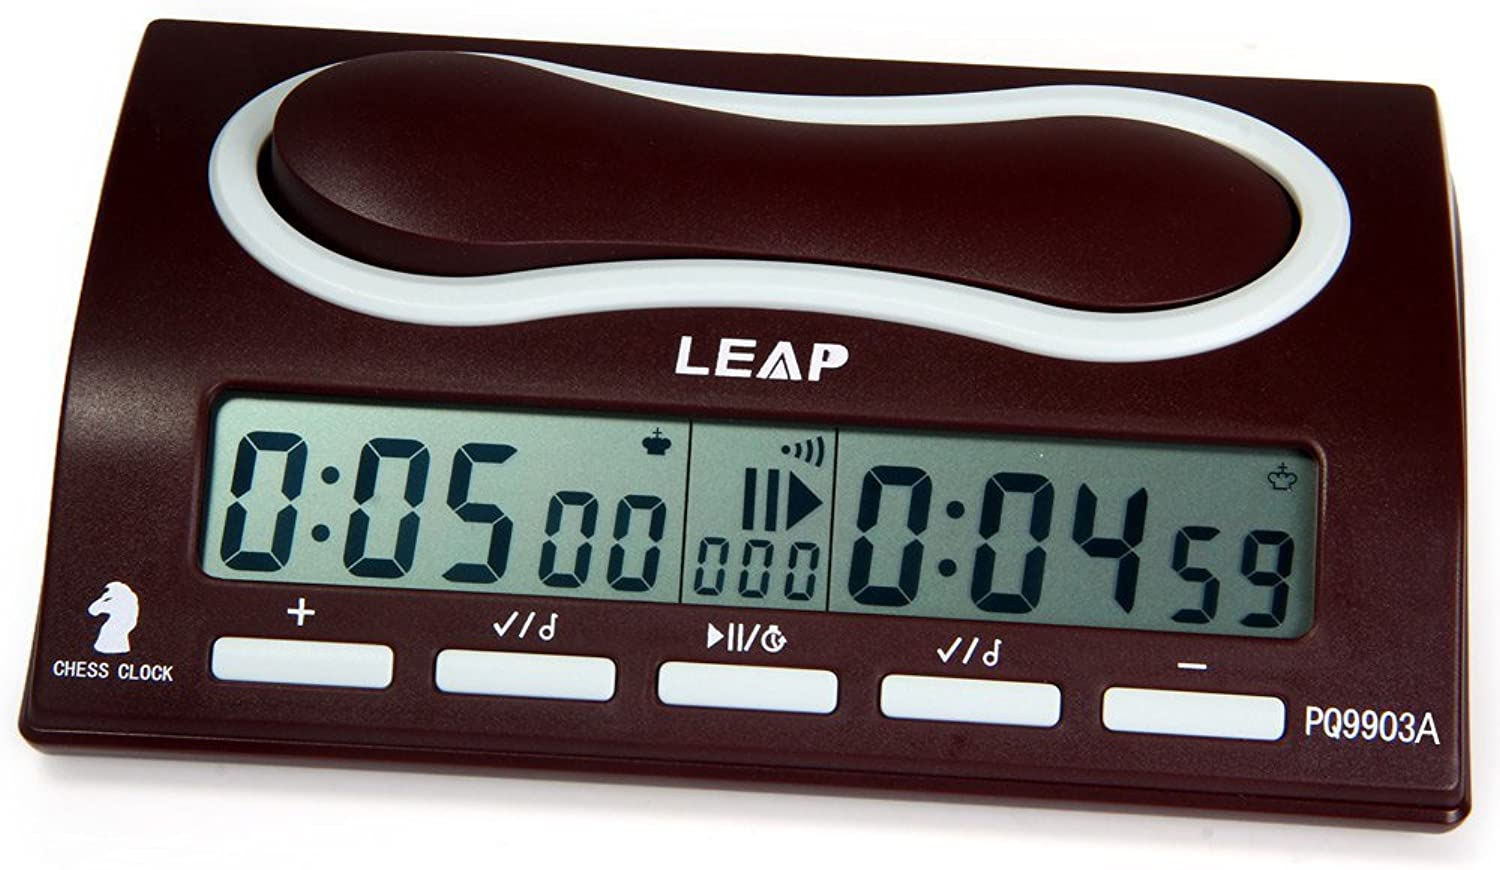 Robolife Professional Digital LEAP PQ9903A Omnipotent Chess Clock I-go Count Up Down Timer